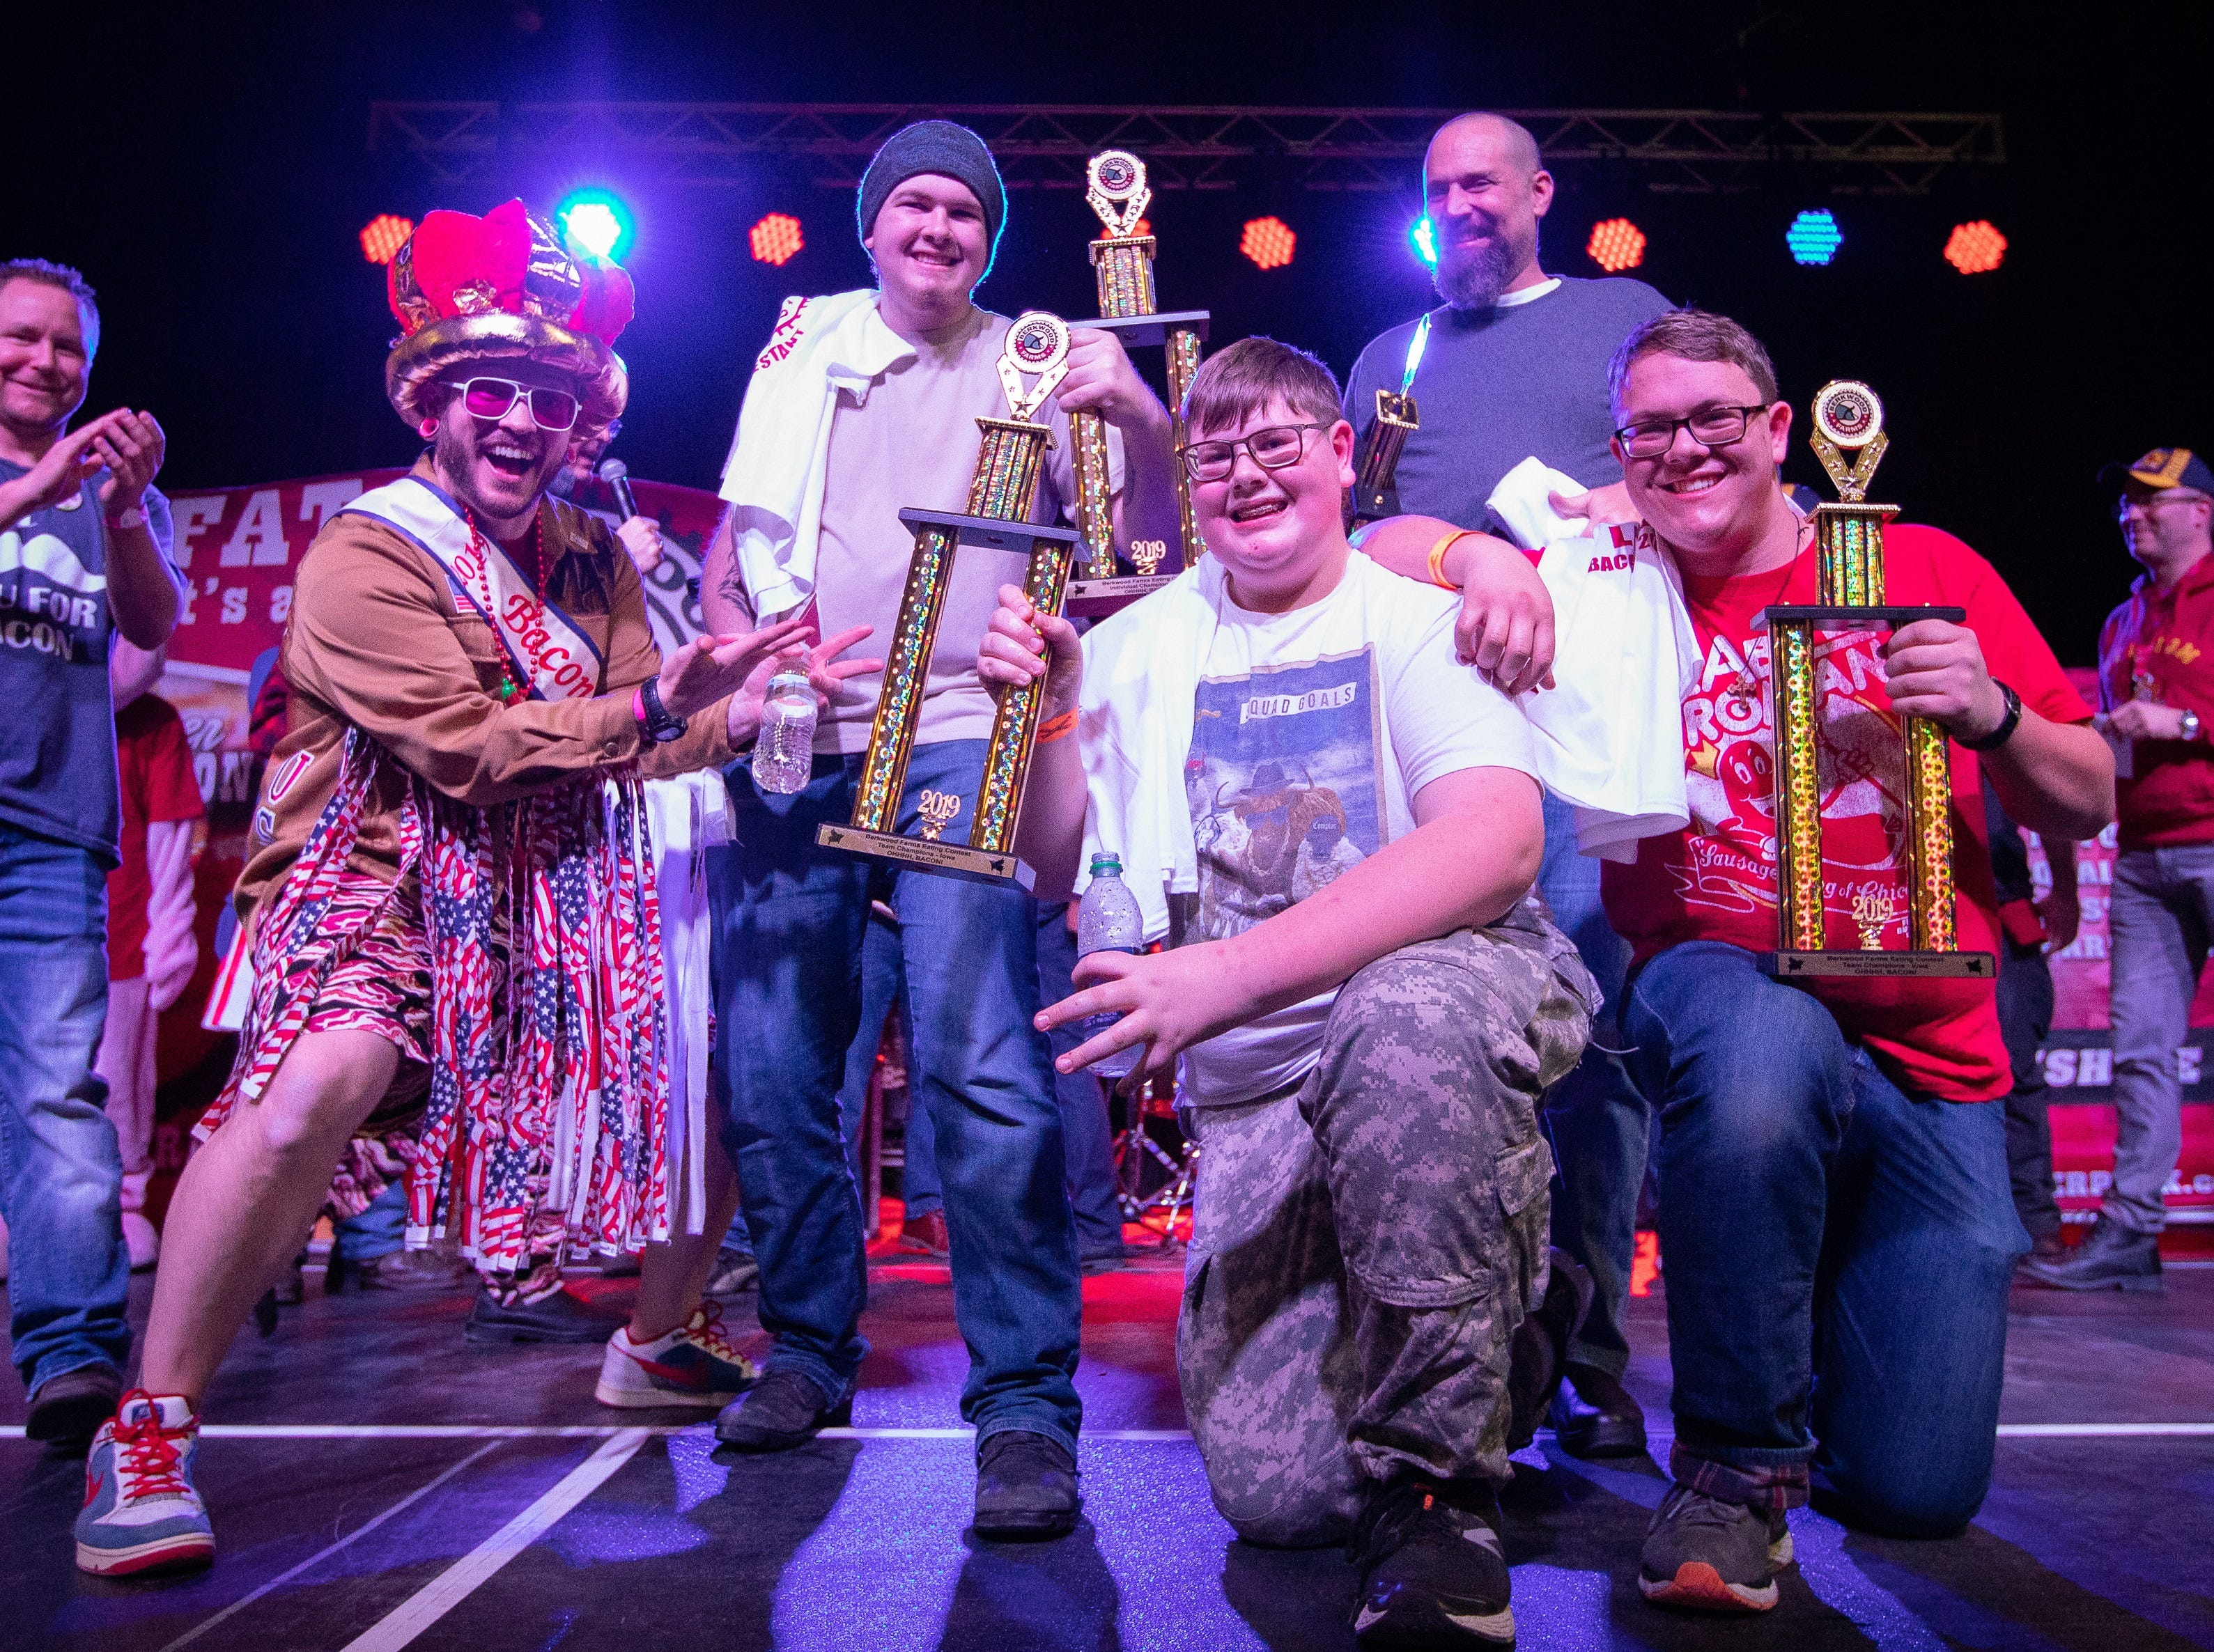 Bacon King Matt Weis (left) poses for a photo with Coleman Farrell, Ronan Farrell, Aarron Canino, and Kilian Farrell celebrate after they won the eating contest during the Bacon Fest at Hy-Vee Hall on Feb. 16, 2019 in Des Moines, Iowa.